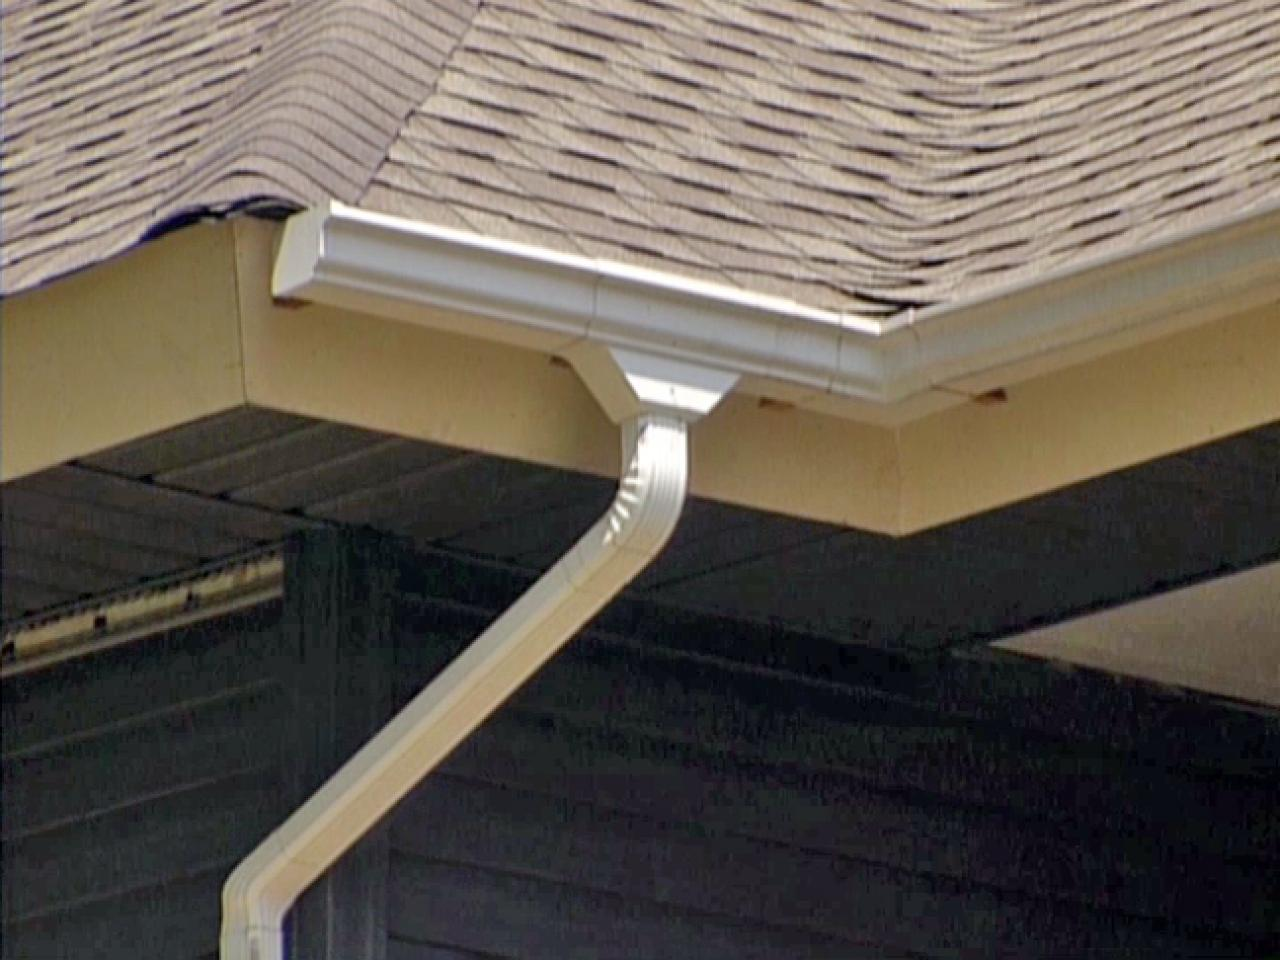 Gutter and Downspout Installation Problems in Indianapolis?